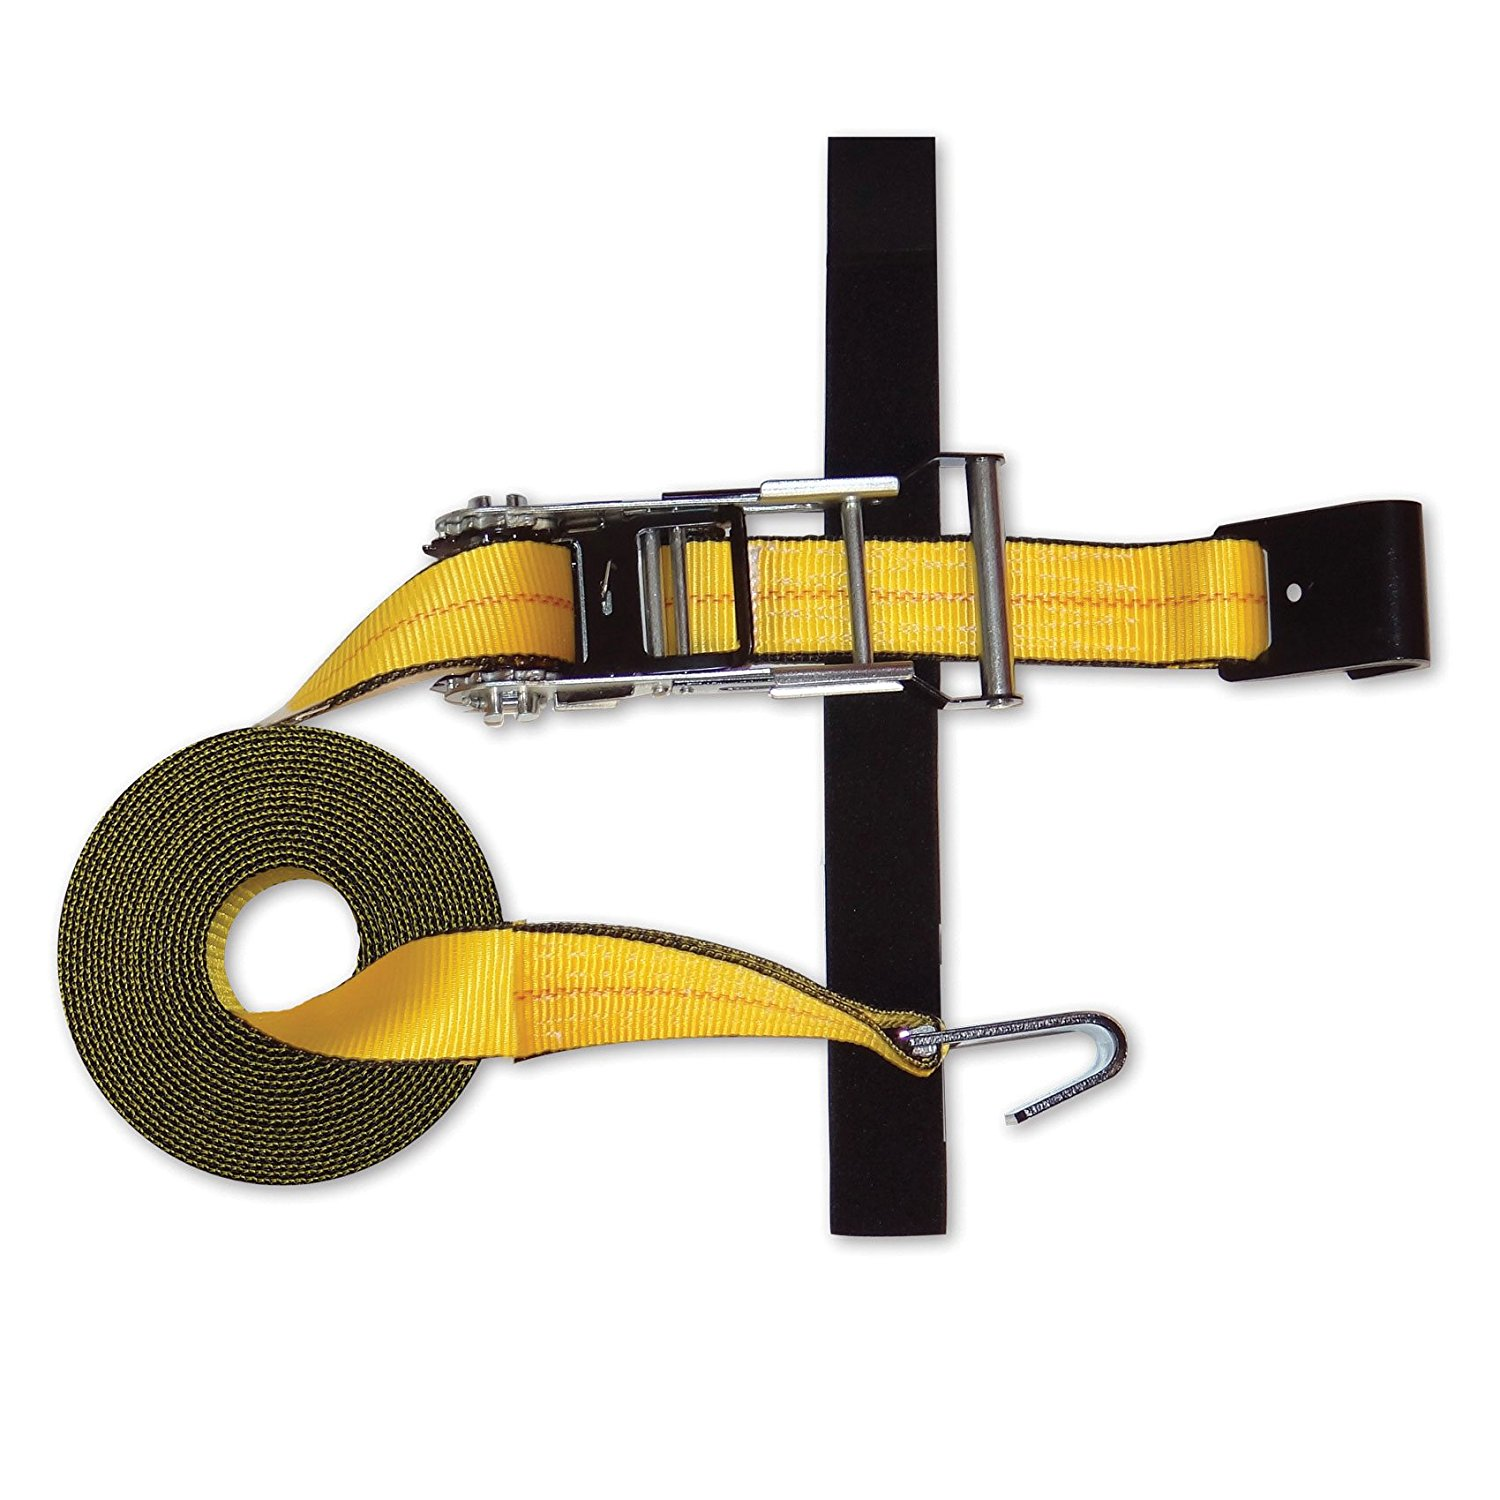 "Snap-Loc Cargo Control SLTHF227RYI Flat-Hook Strap, 2"" x 27' Expandable Ratchet with Hook and Loop Storage Fastener, 3333 gal Capacity, 324"" Length, 2"" Width, Yellow"